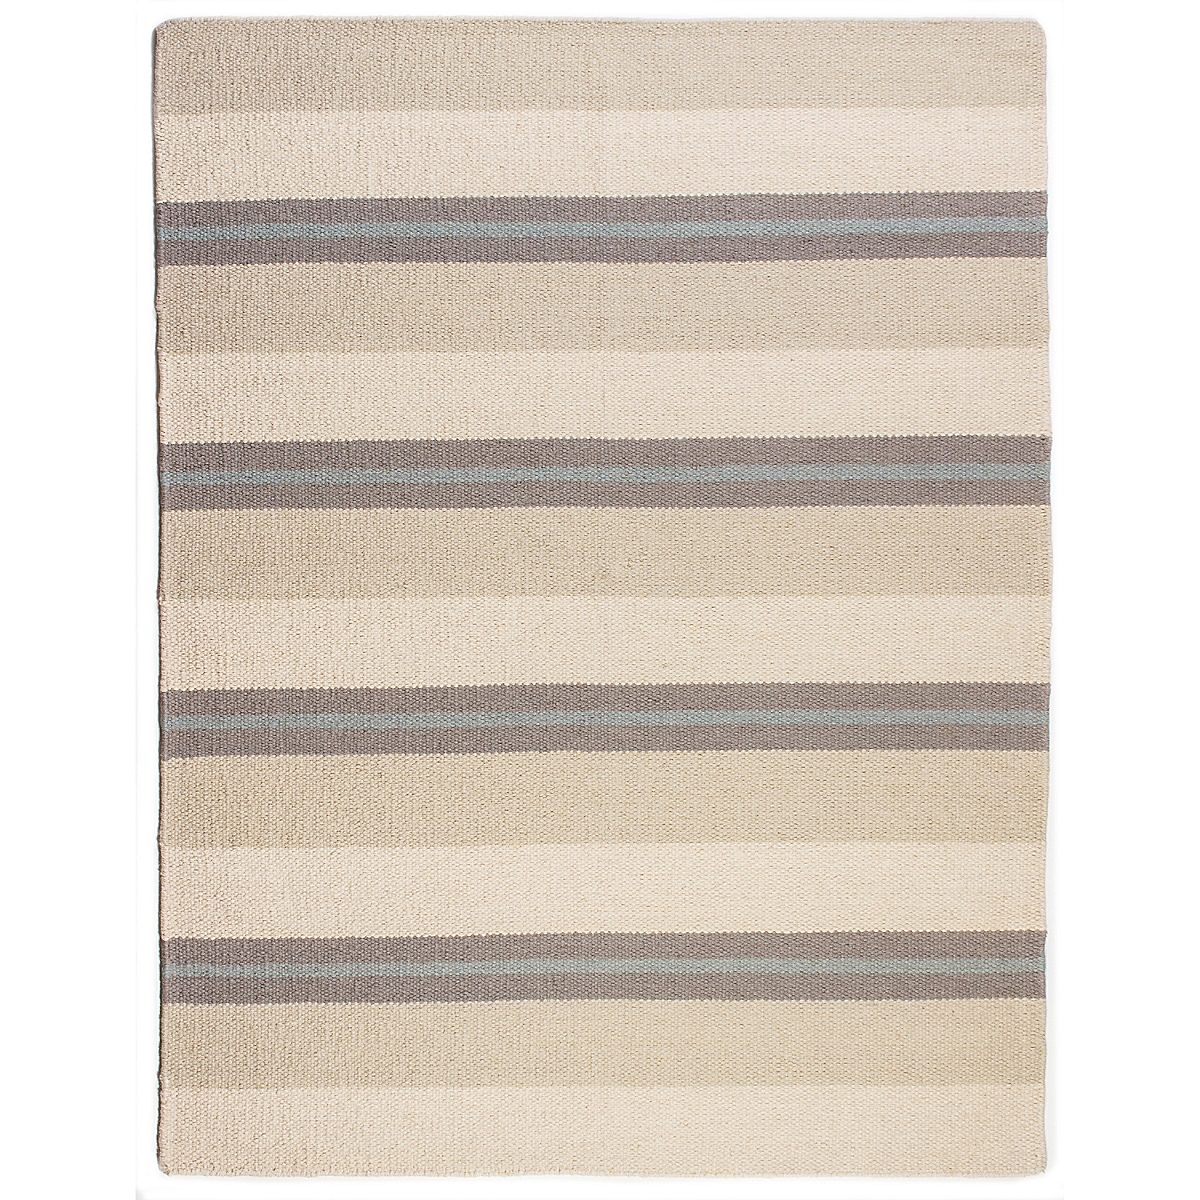 Saybrook Wool Berber Striped Rug